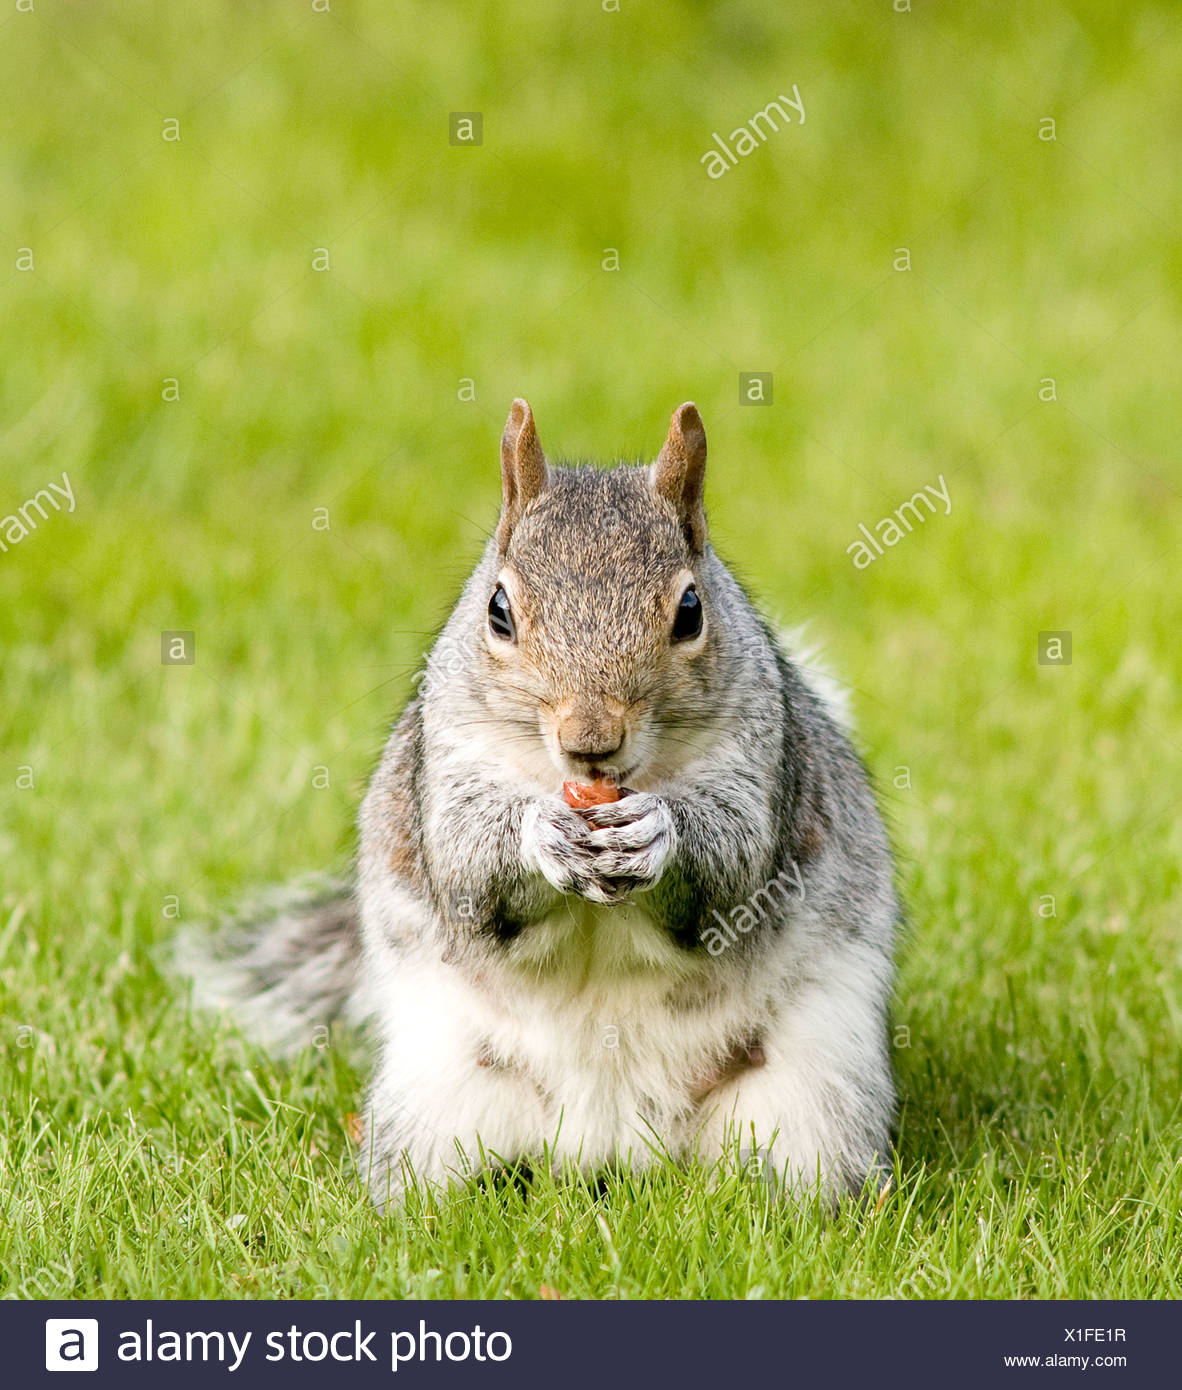 A grey squirrel eating a nut - Stock Image